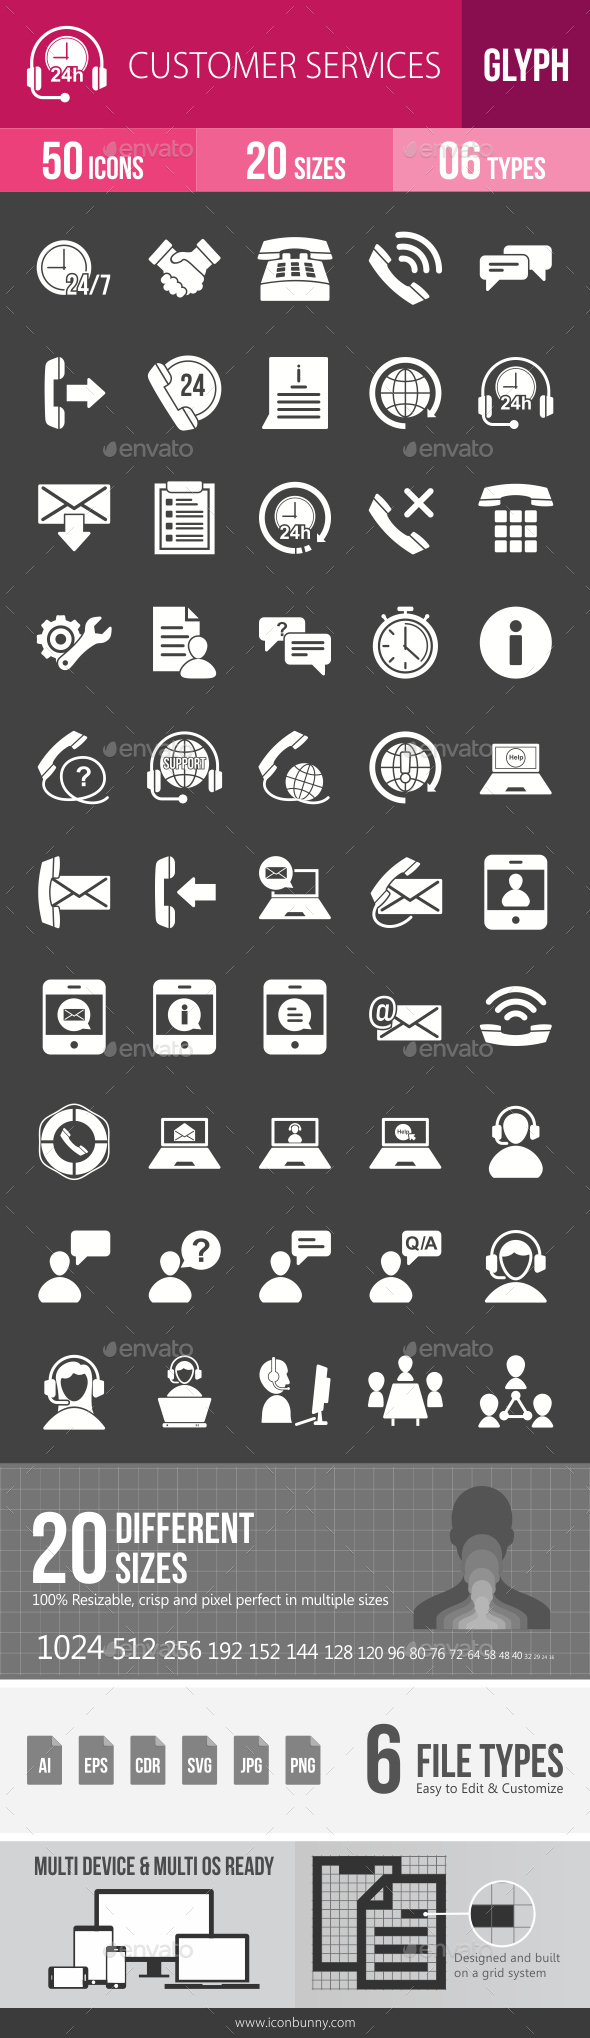 Customer Services Glyph Inverted Icons - Icons